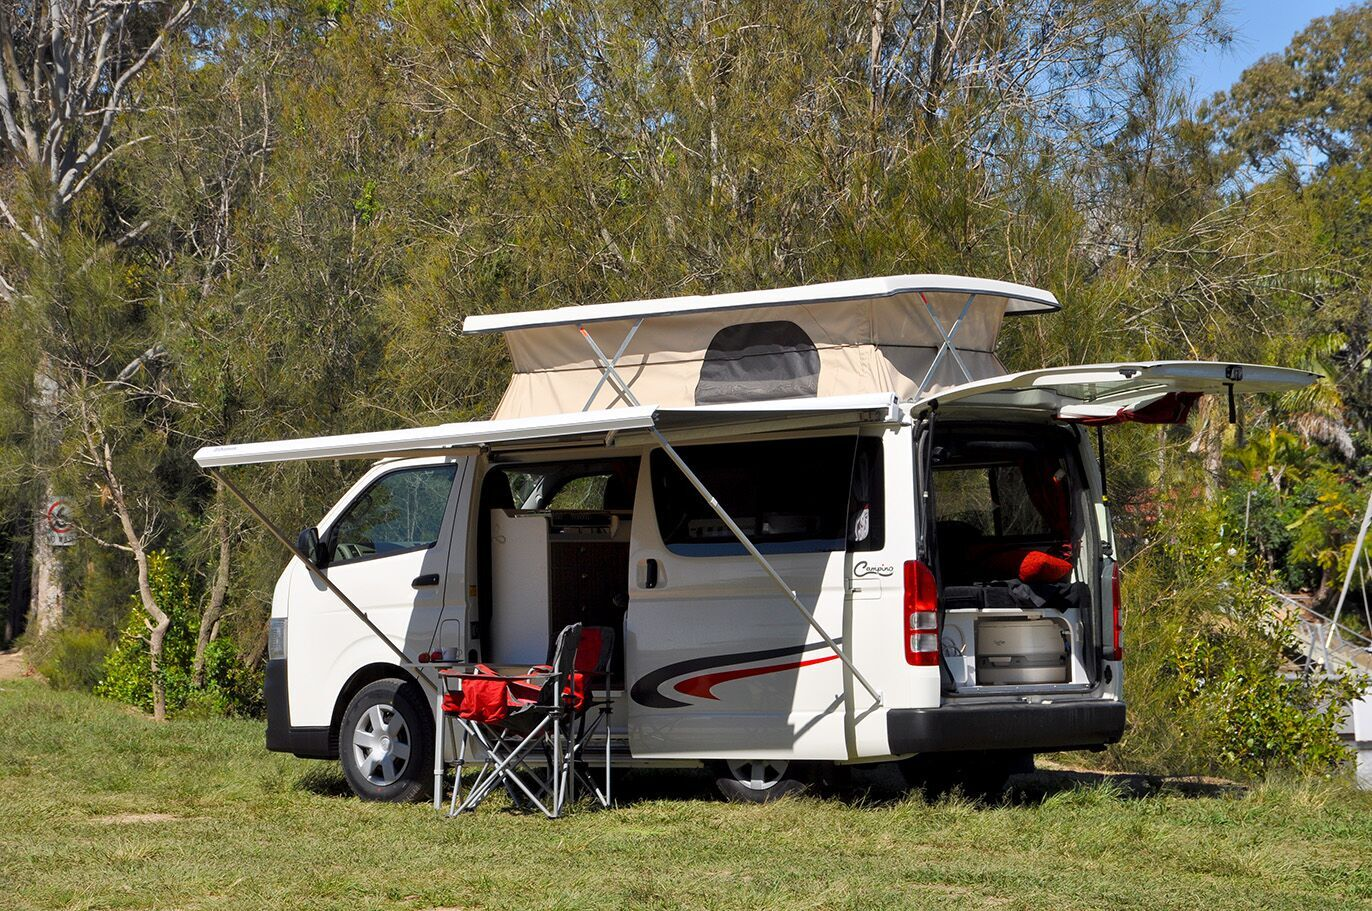 Toyota Hiace - Southern Spirt Campervans - true custom build RV's